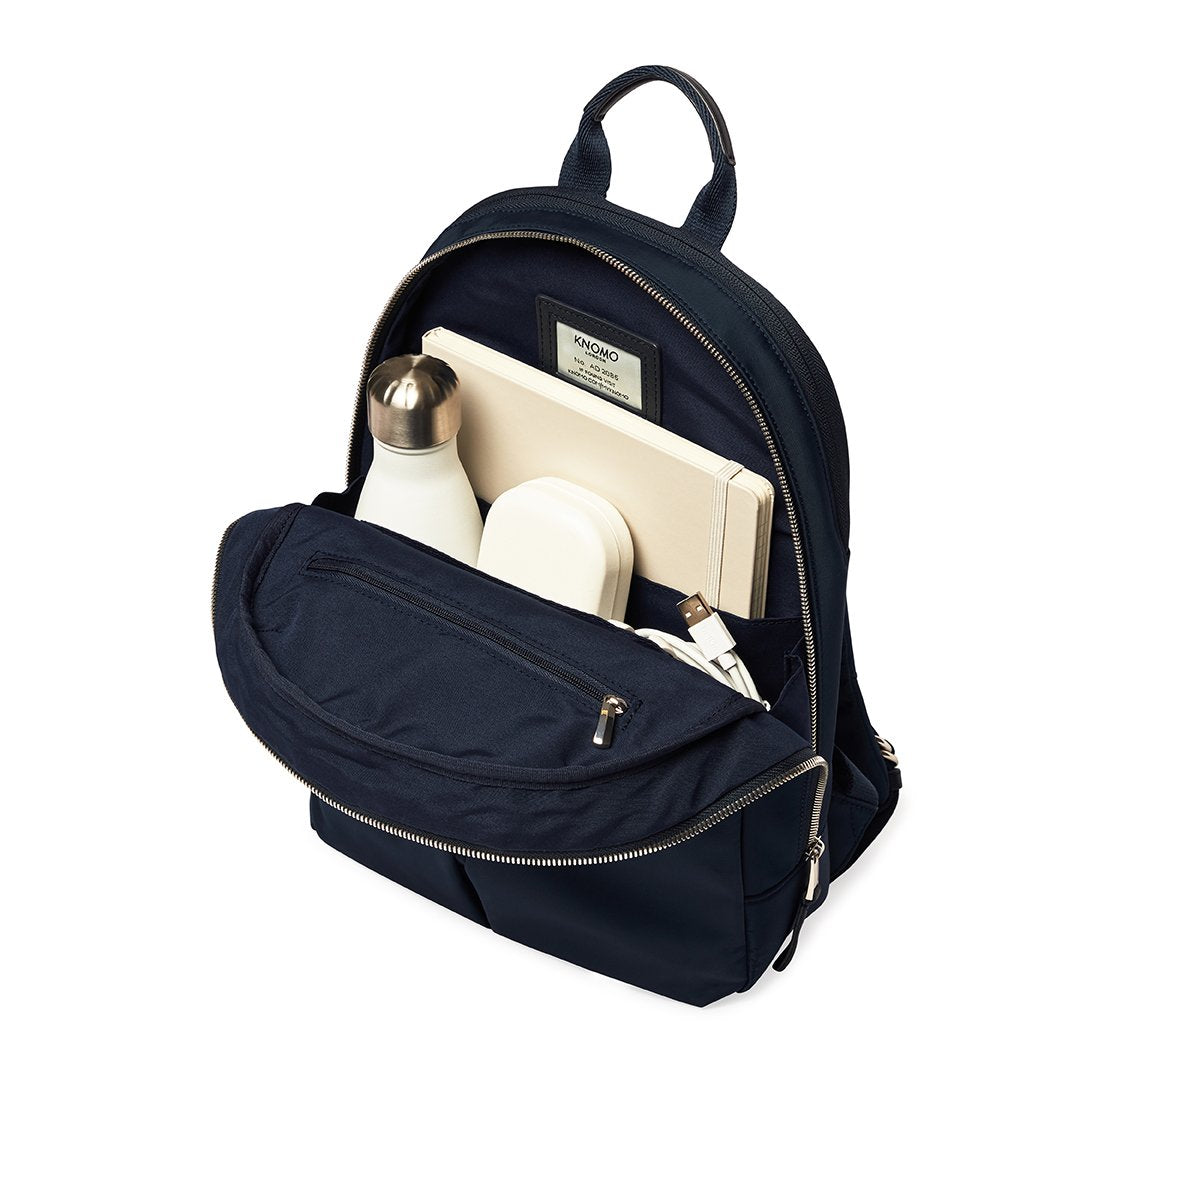 "KNOMO Mini Beaufort Backpack Internal With Items 12"" -  Dark Navy Blazer 